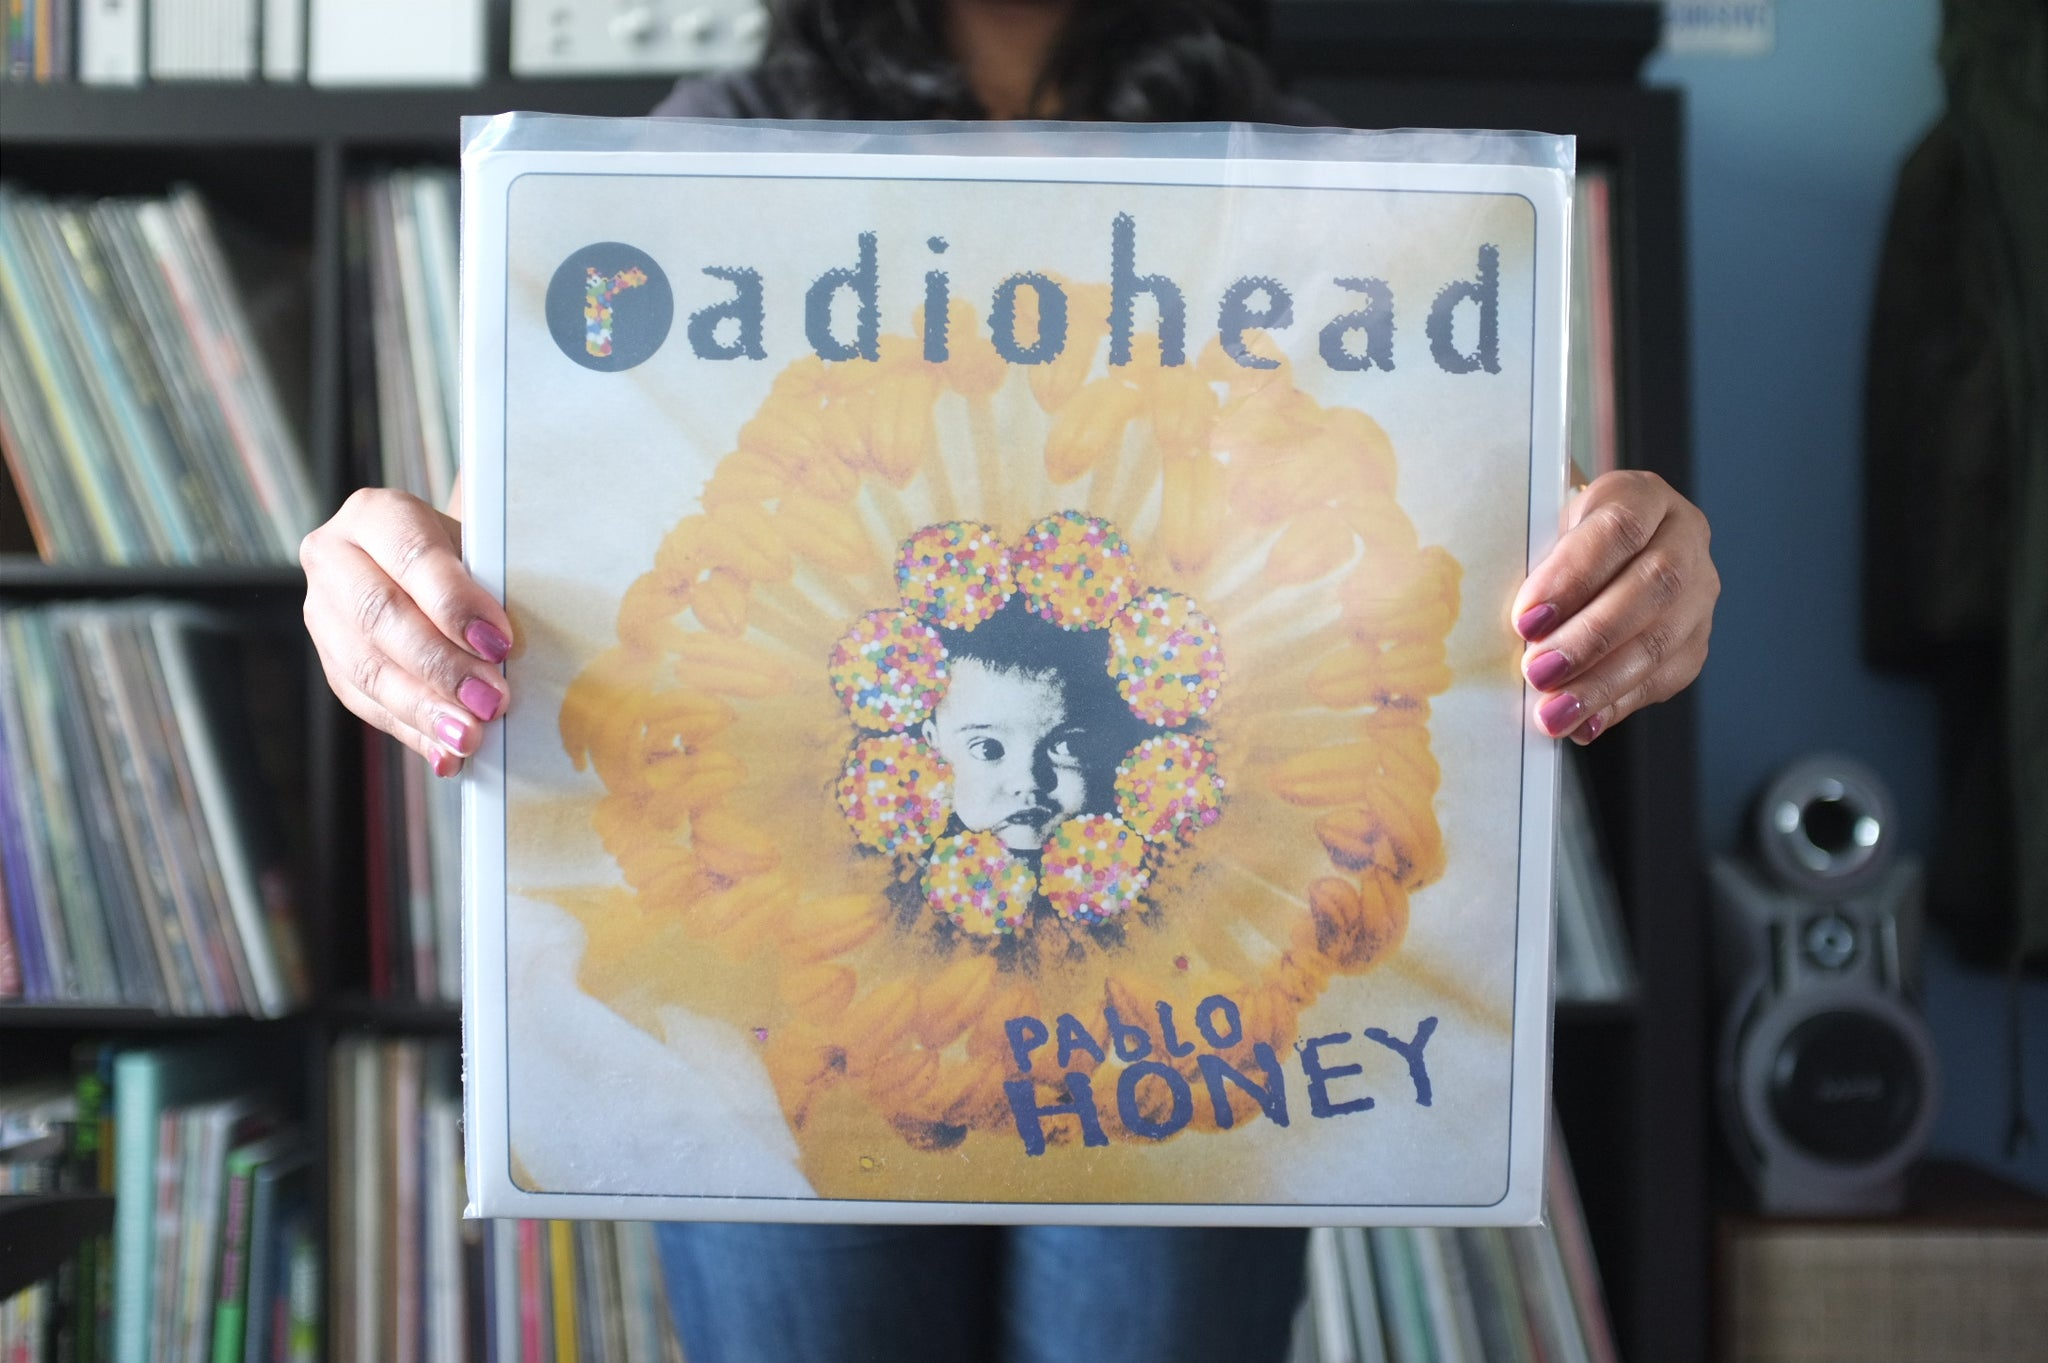 Radiohead - Pablo Honey - VEE's Record Shelf